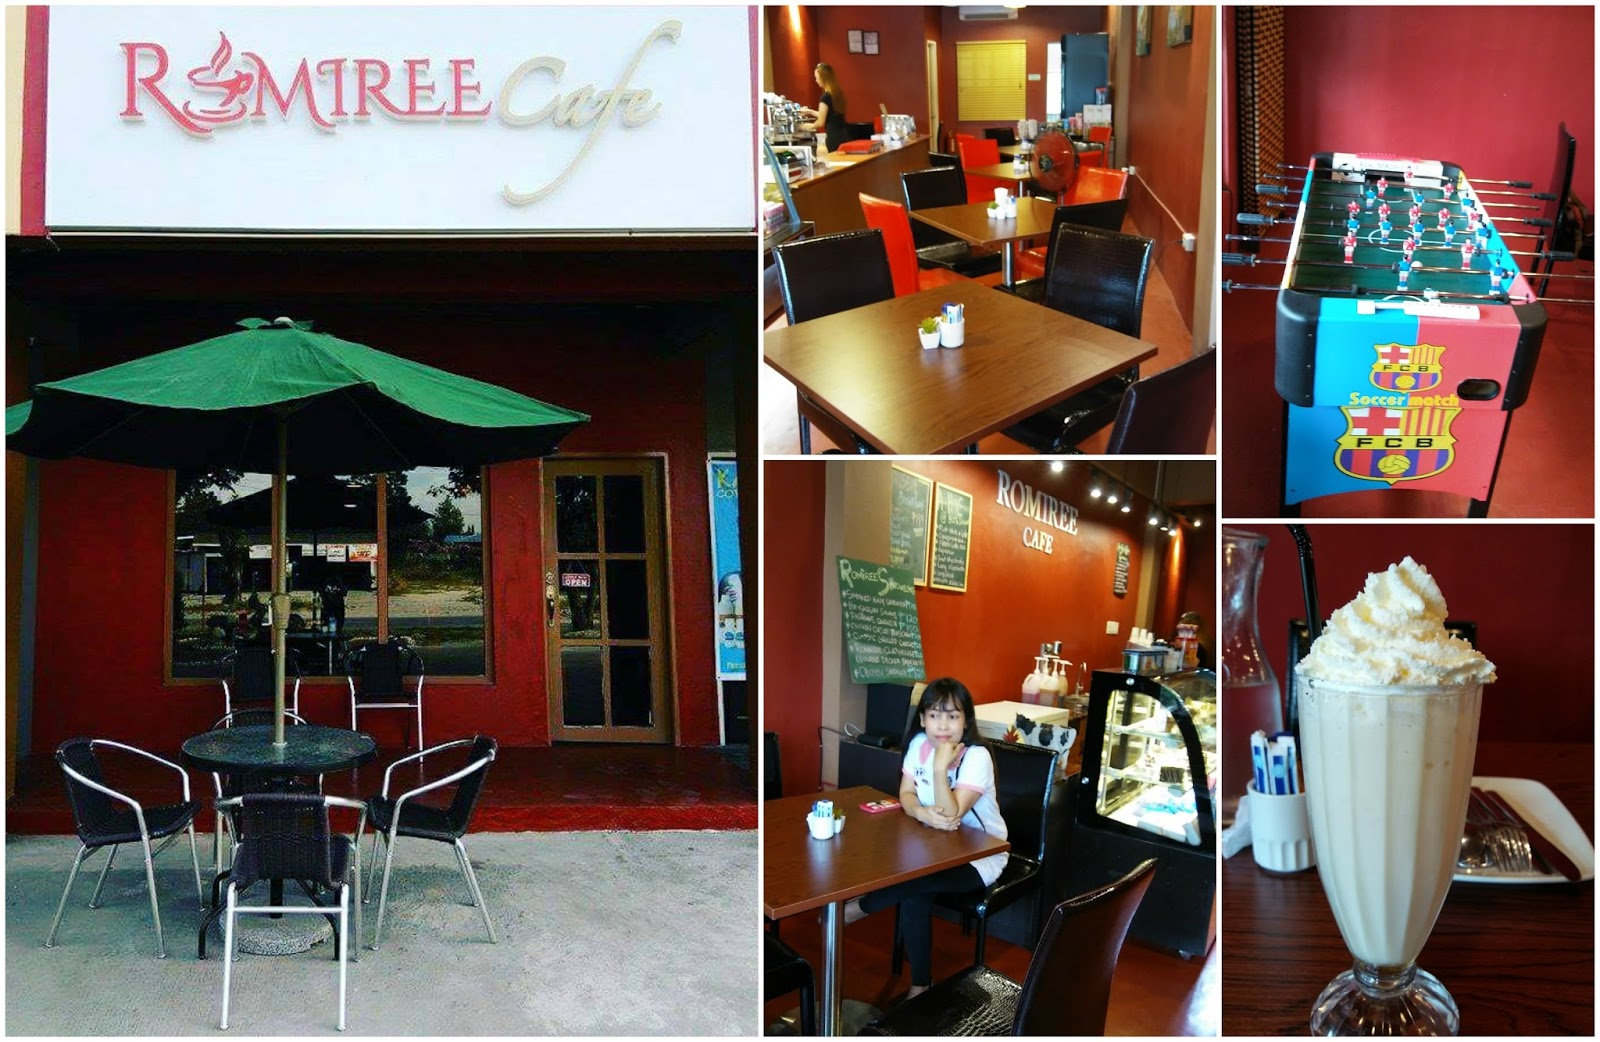 asiancouplediary: philippines 2017: romiree cafe in friendship